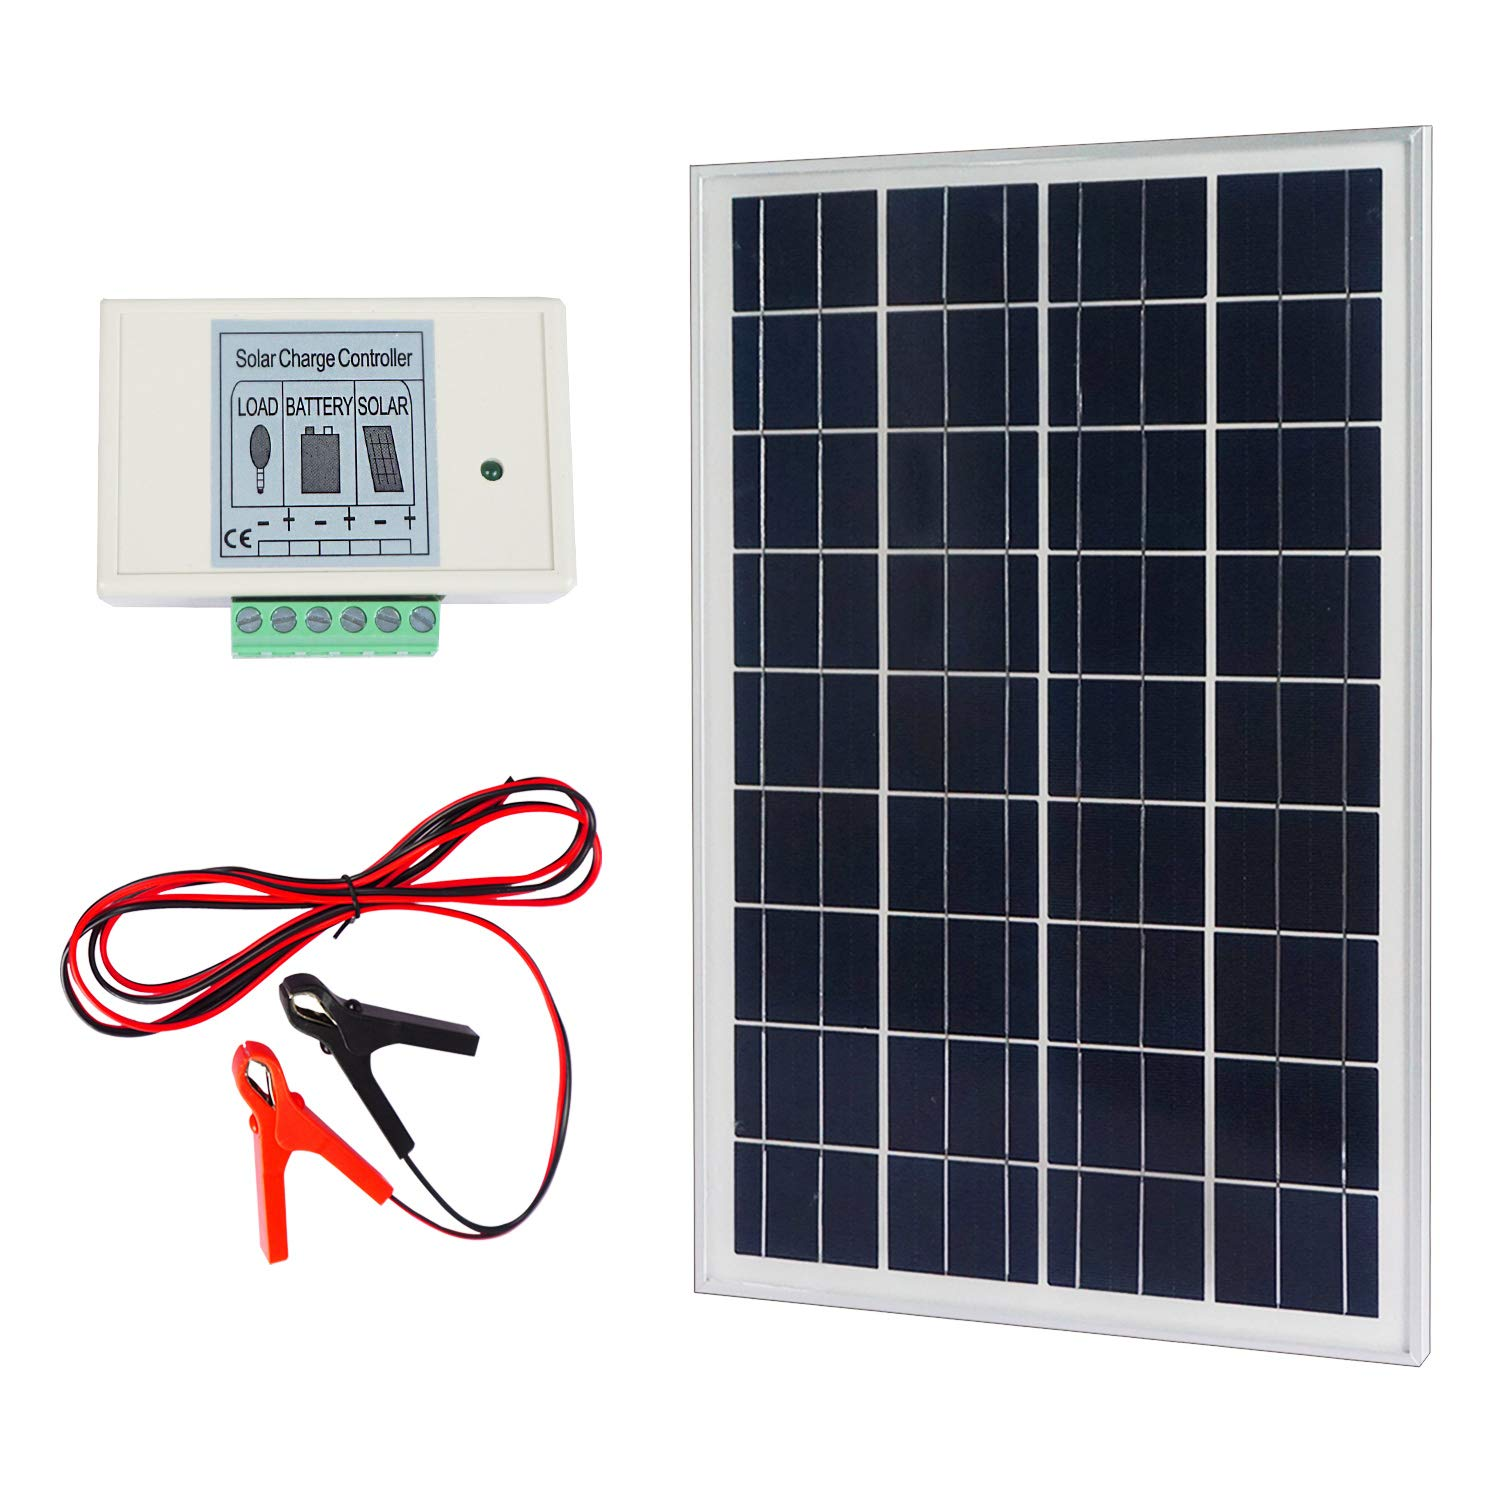 Eco Worthy 20w 12v Ip65 Solar Panel Kit Off Grid Micro Inverter Wiring Diagram As Well Series Polycrystalline Aluminum Battery Clips 3a Charge Controller Garden